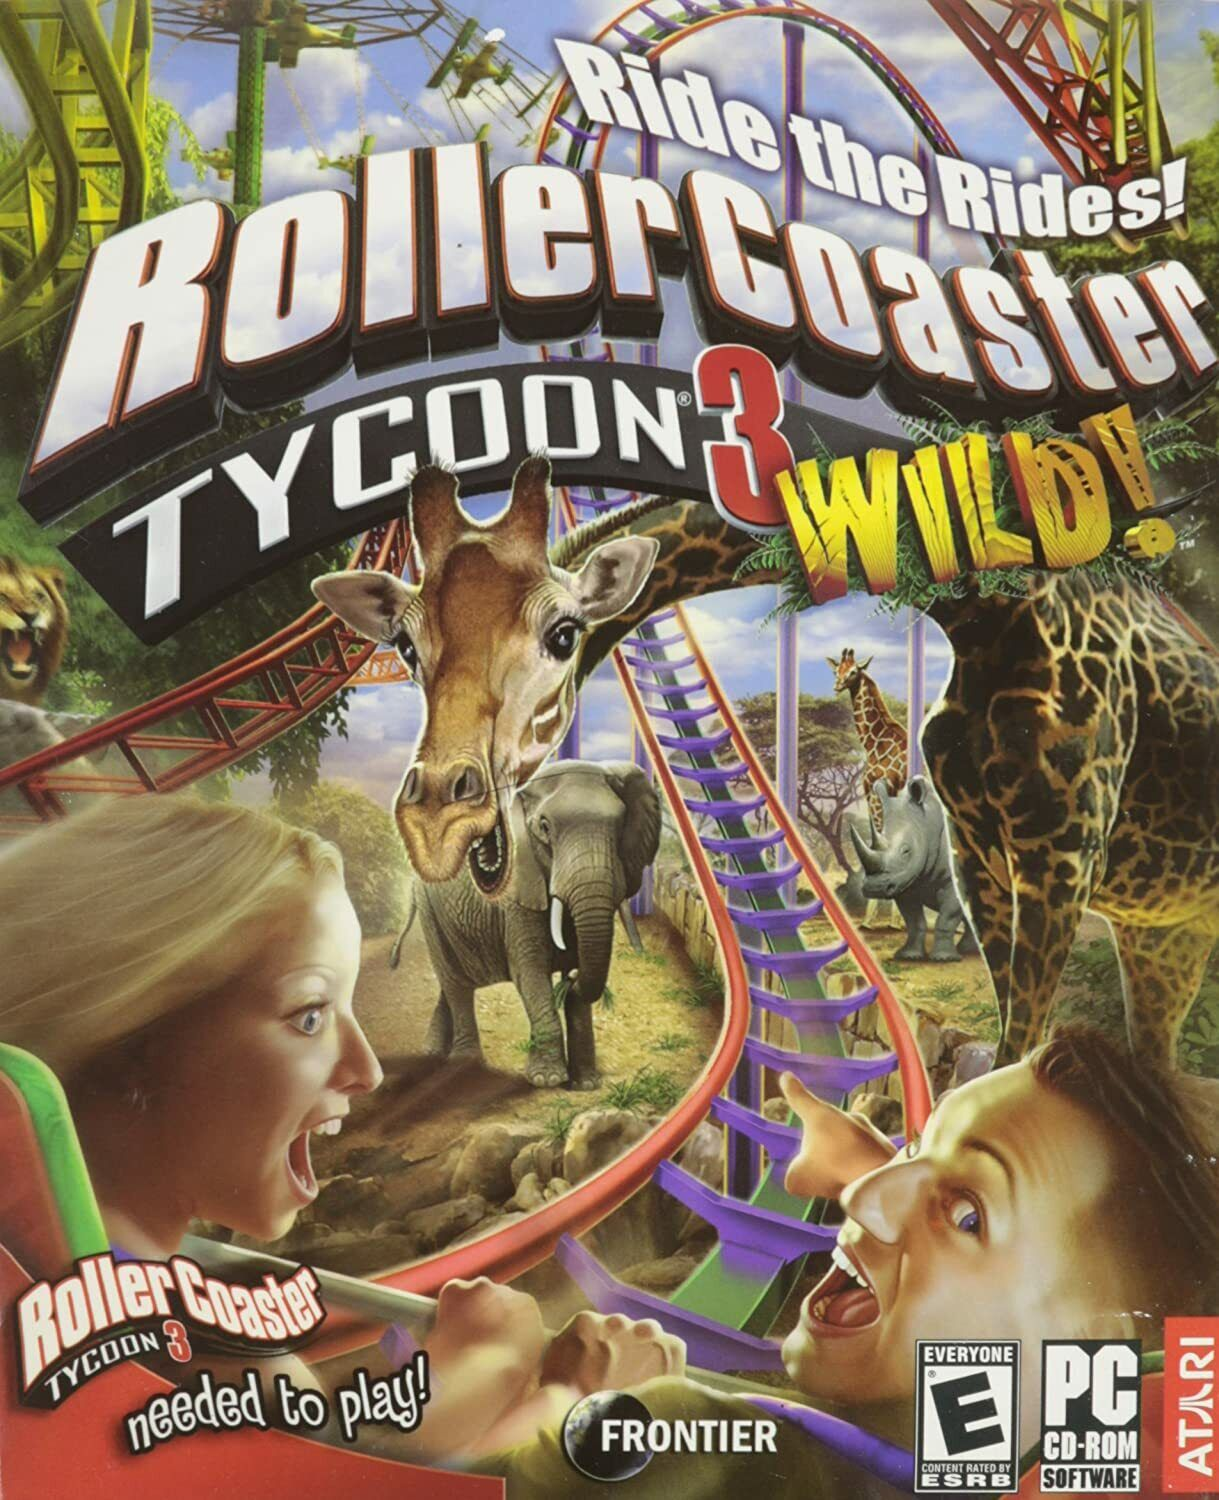 Computer Games - RollerCoaster Tycoon 3: Wild! -- Add-On Expansion Pack Windows PC Computer Game